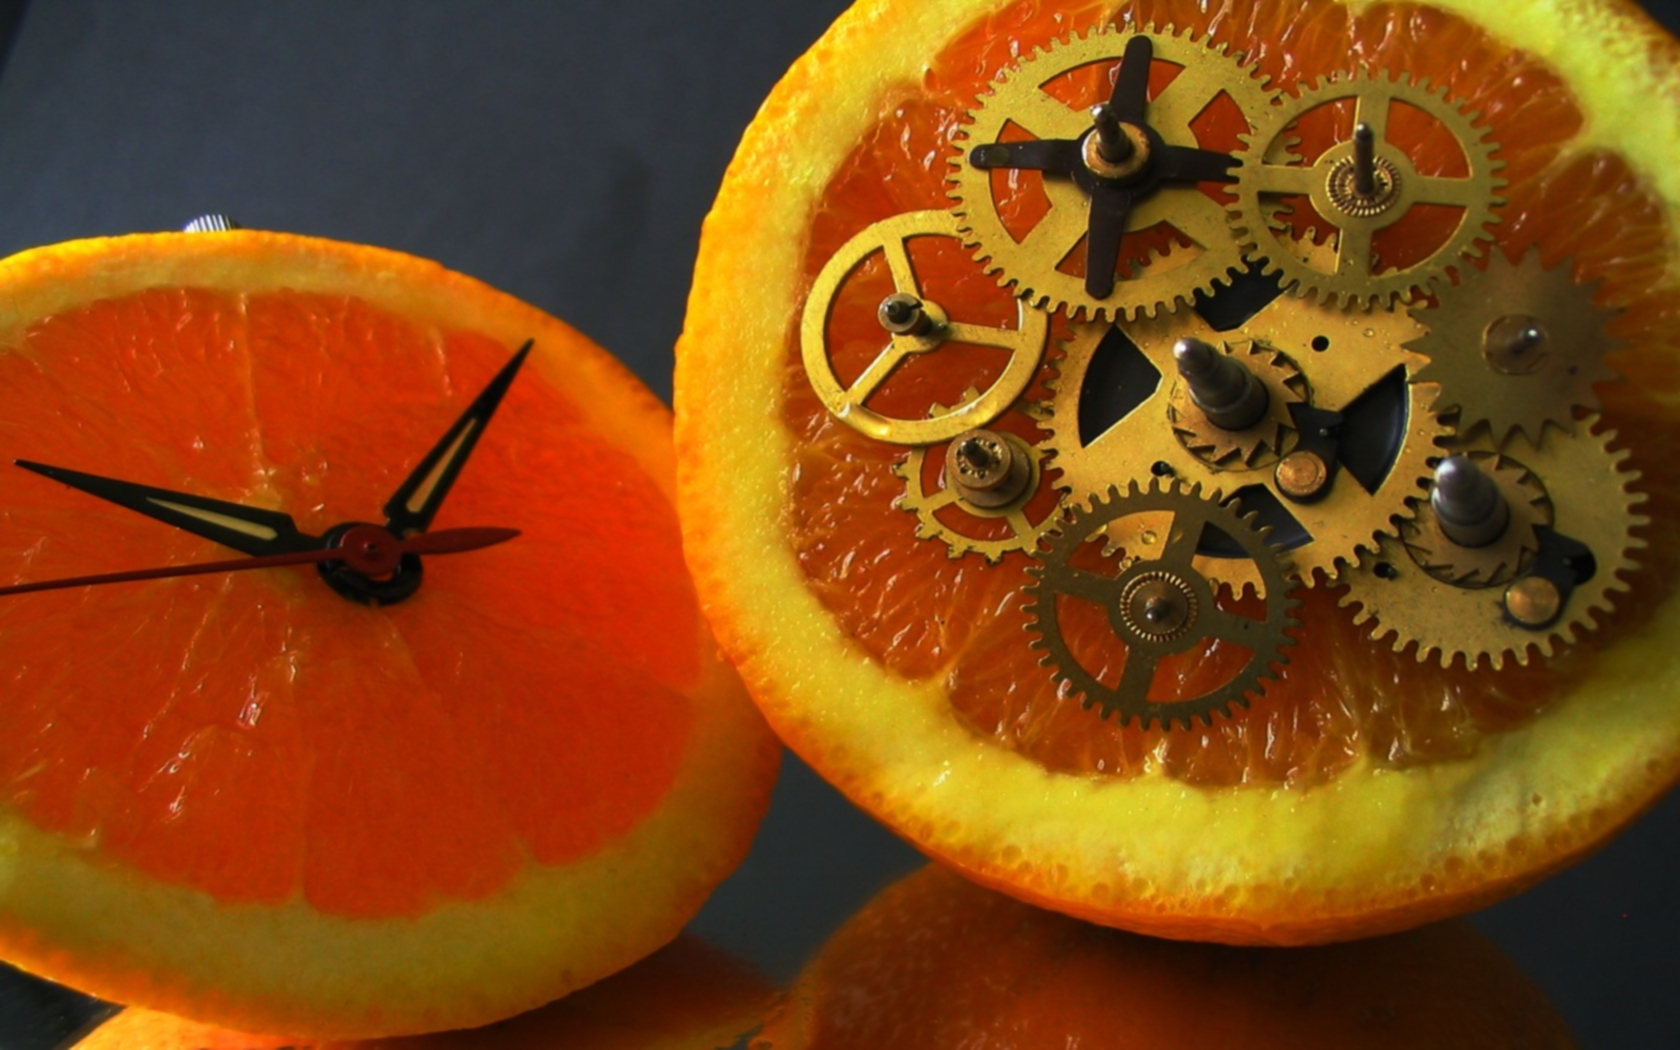 Naziv: fruits-clocks_Orange.jpg, pregleda: 91, veličina: 840,6 KB